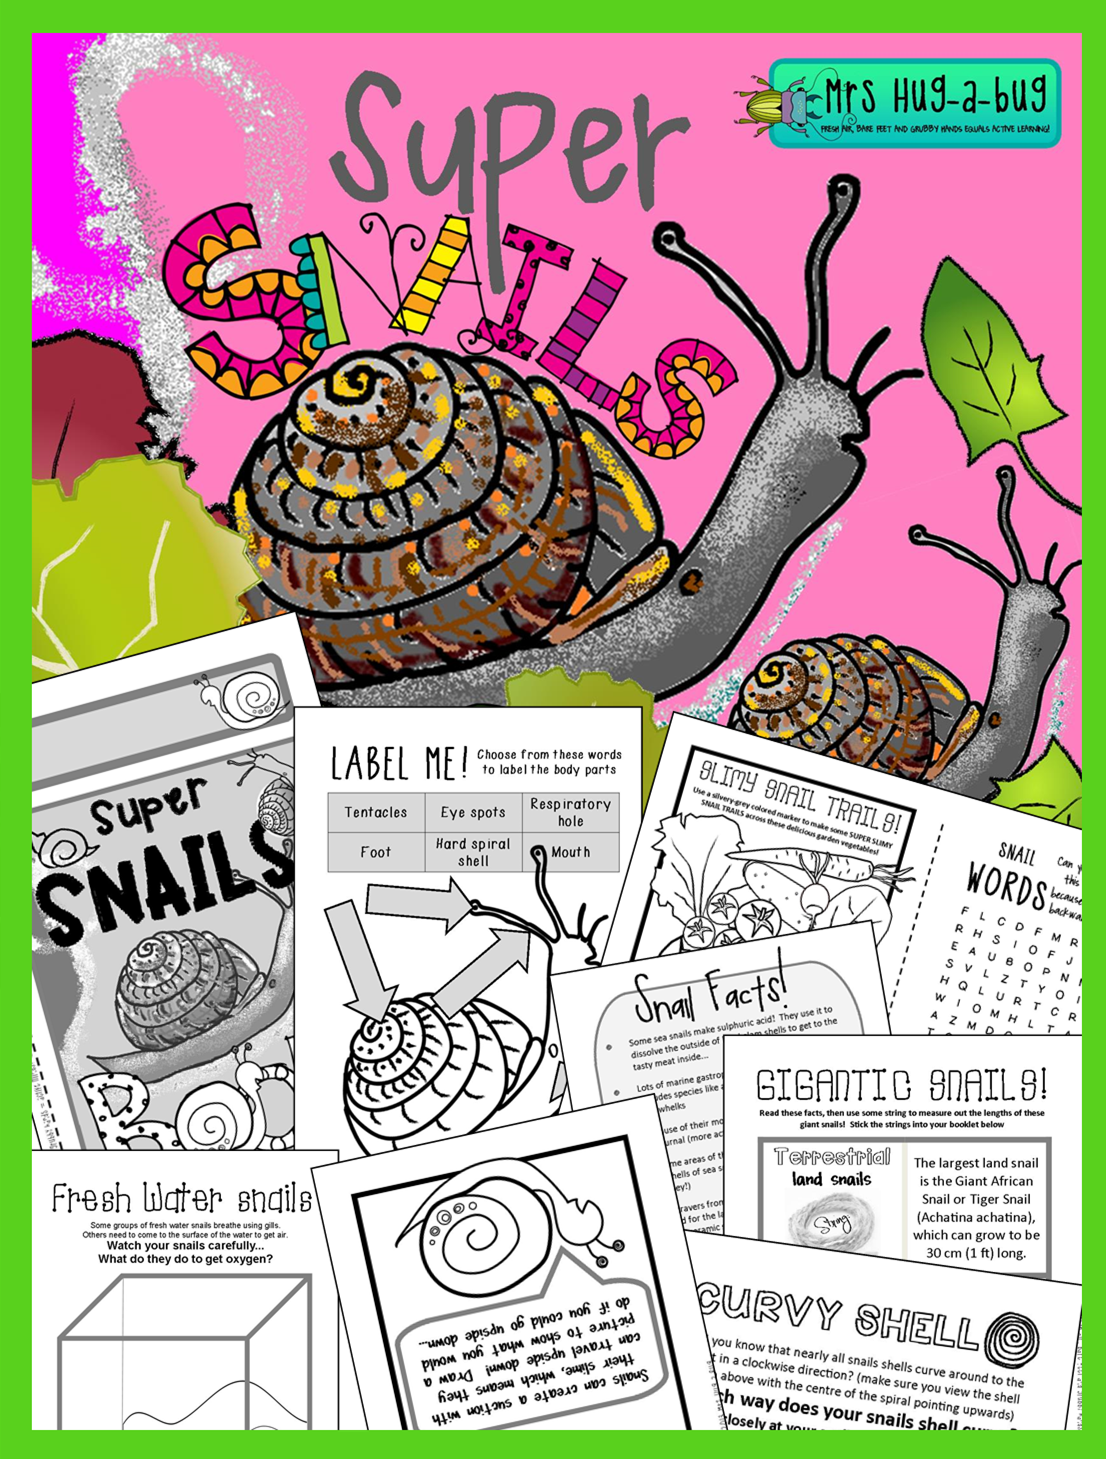 Snails Fun Amp Facts About Terrestrial Amp Aquatic Snails Amp Slugs